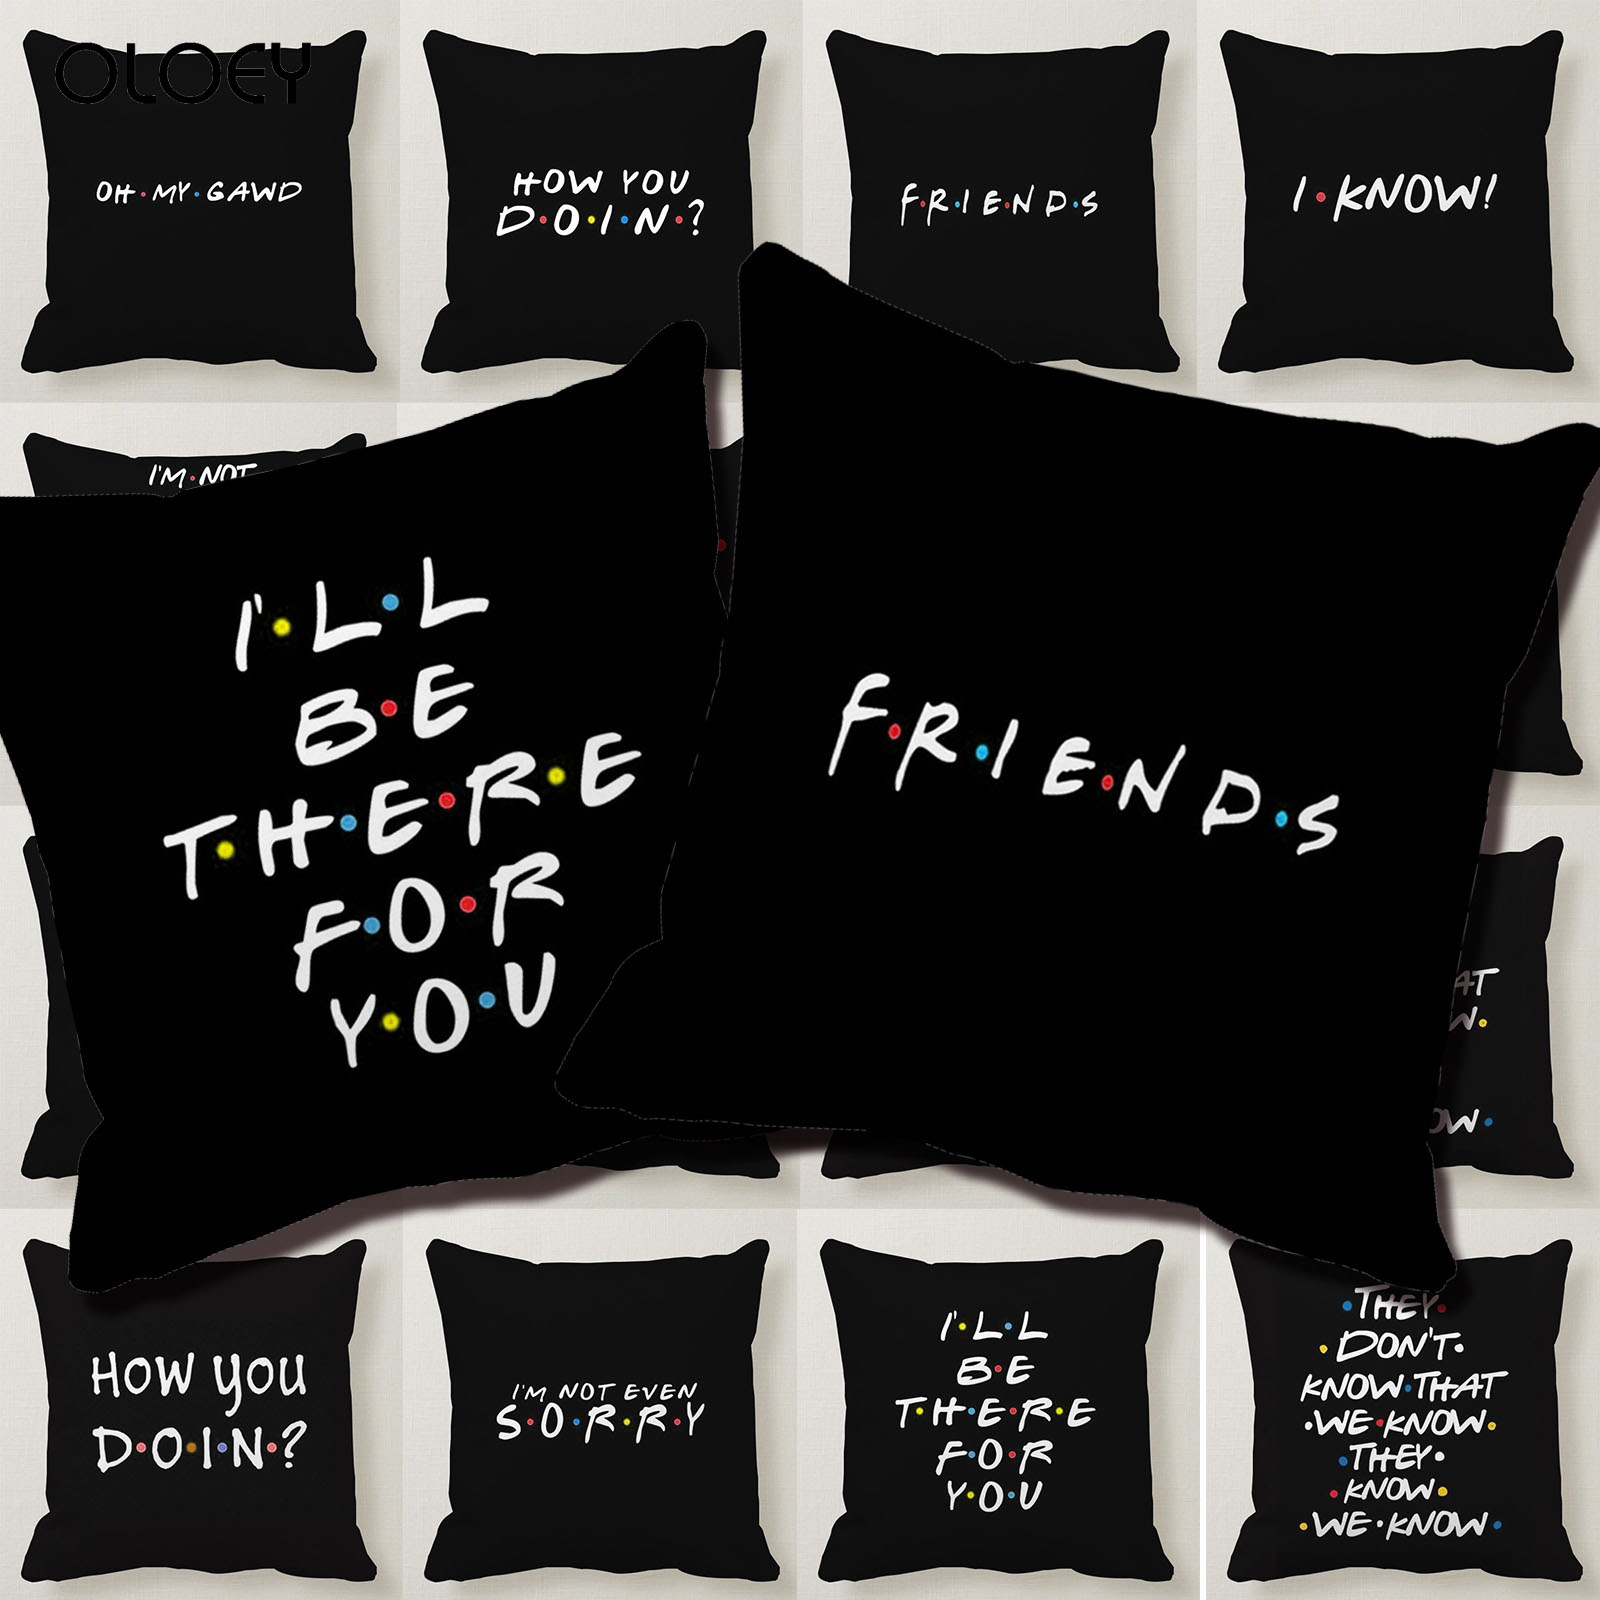 They Dont Know That We Know They Know Friends TV Series Oreiller Pillow